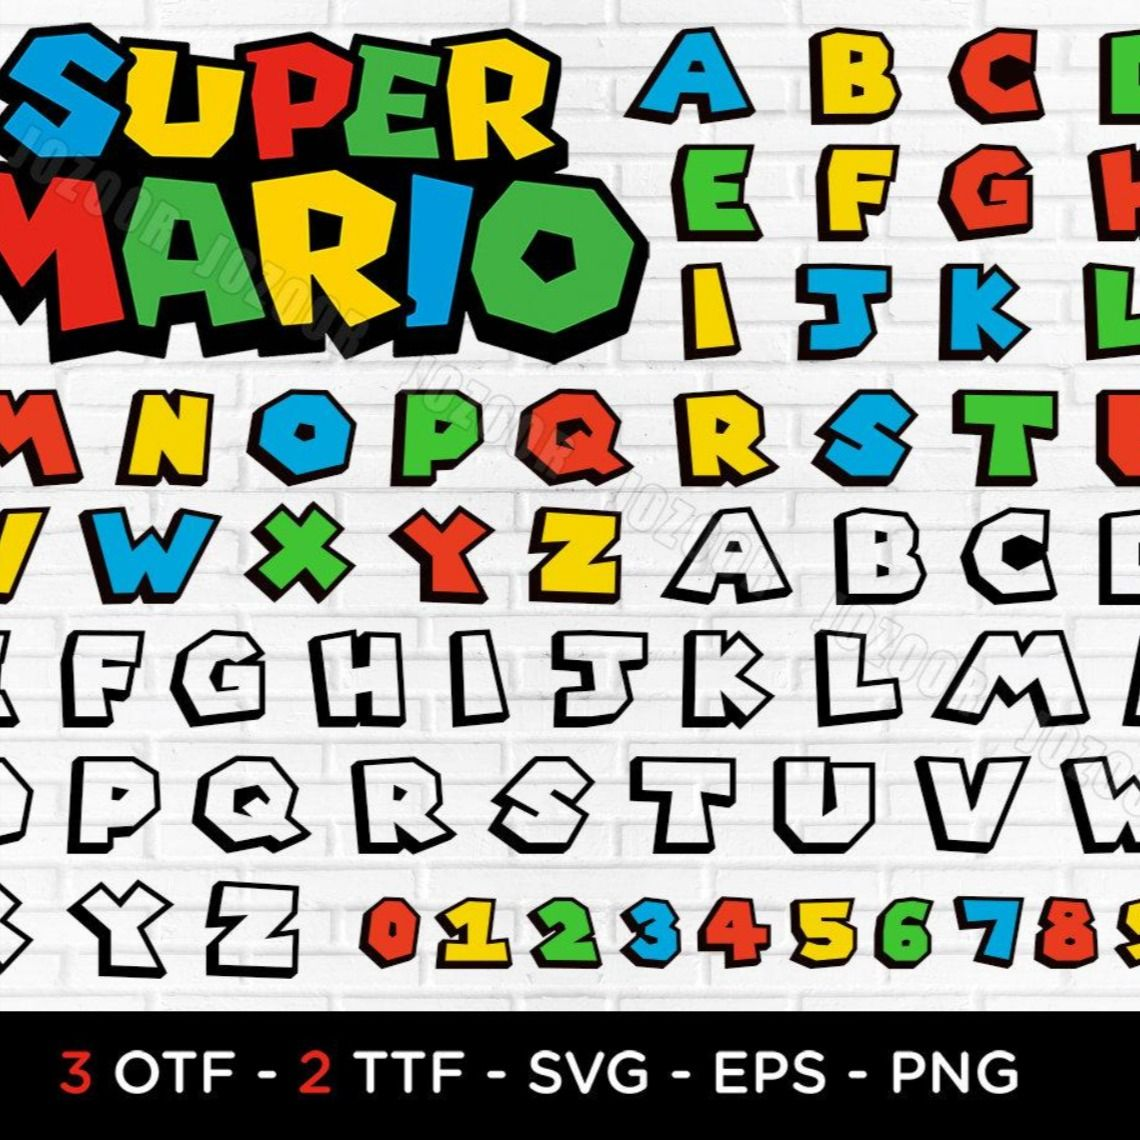 Super Mario Font Mario Font Letters Svg Dxf Png Eps For Cricut Silhouette Printing Super Mario Font Opentype Svg Installable Otf Font In 2021 Super Mario Coloring Pages Super Mario Super Mario Free